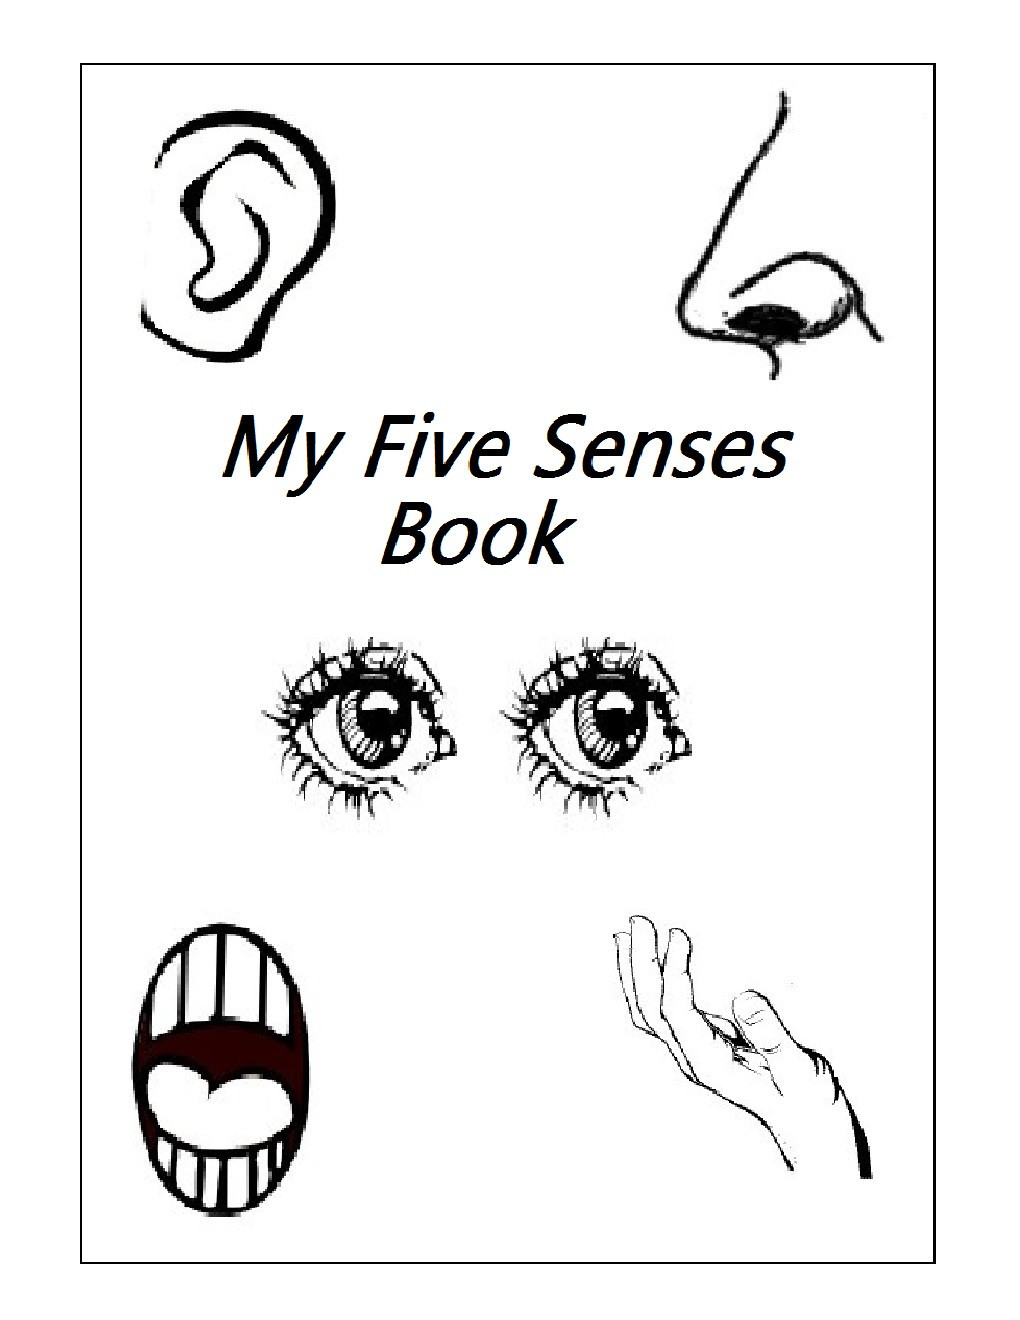 5 Senses Worksheet Preschool 5 Senses Worksheets for Kindergarten – Worksheet for Kids